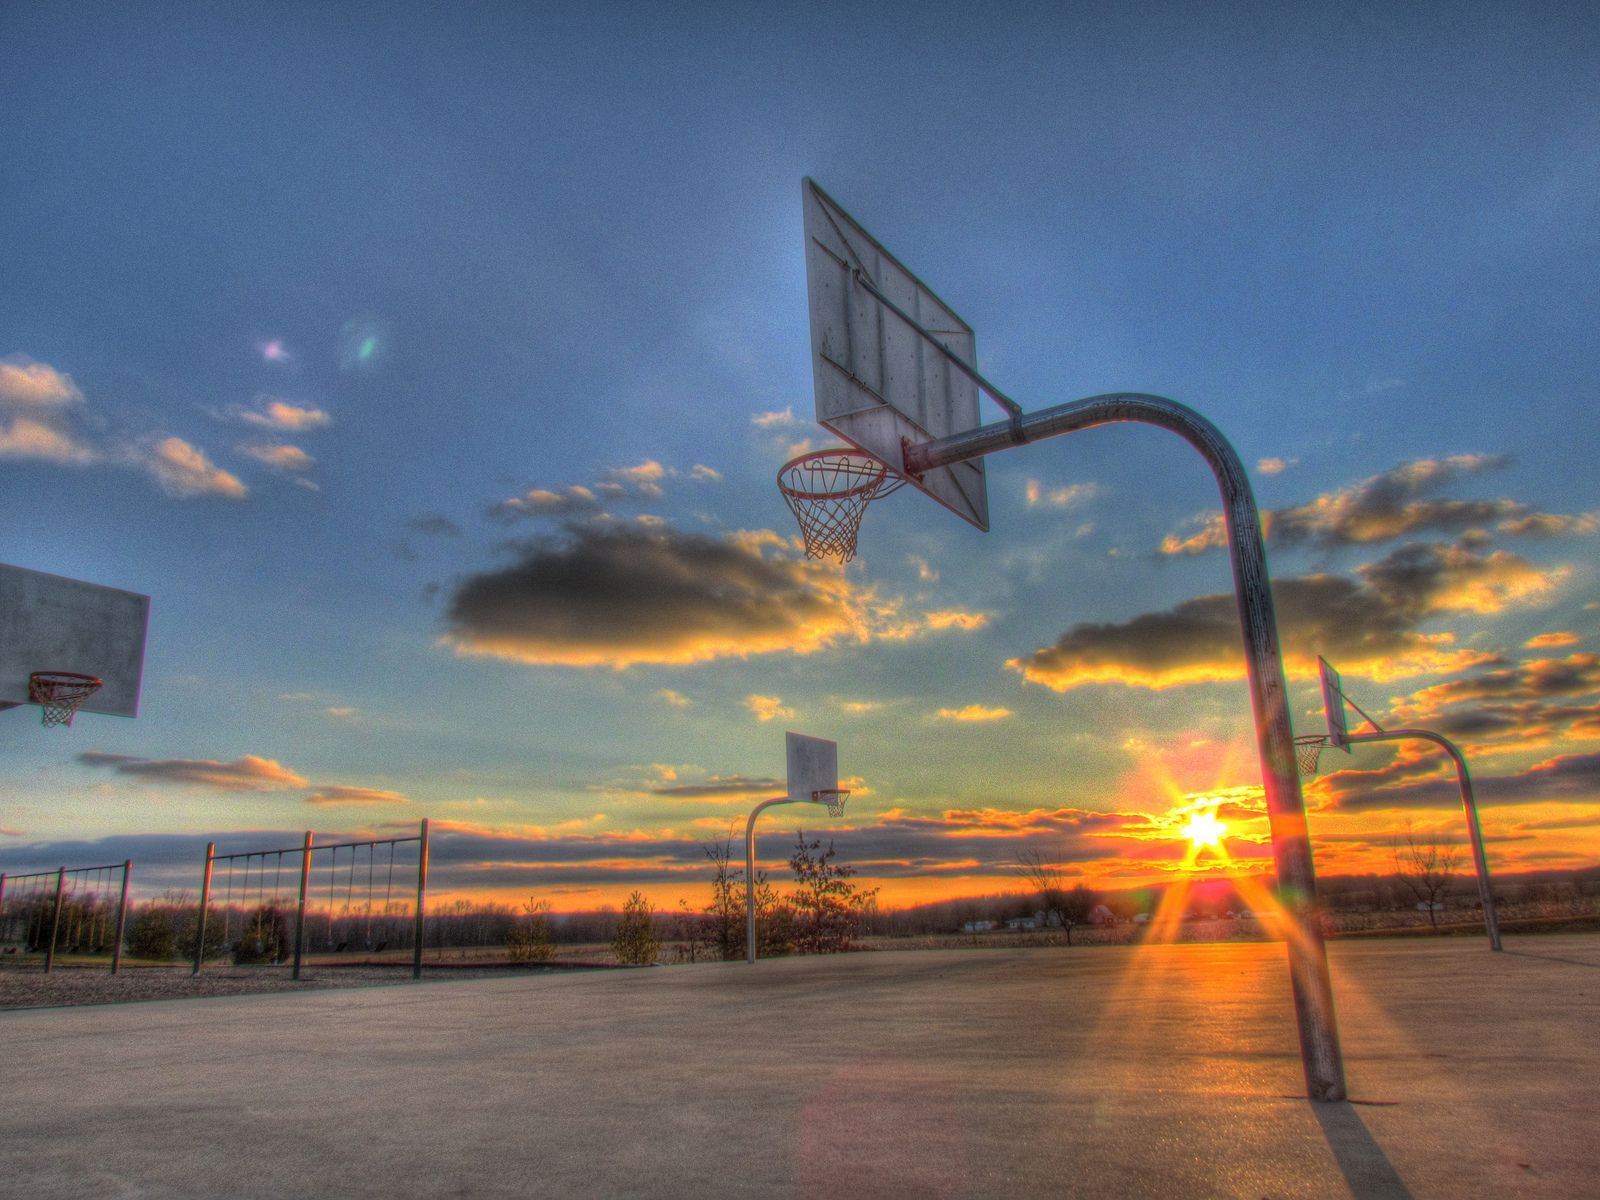 Hd Basketball Court Wallpaper For Iphone   Kemecercom Pool 1600x1200